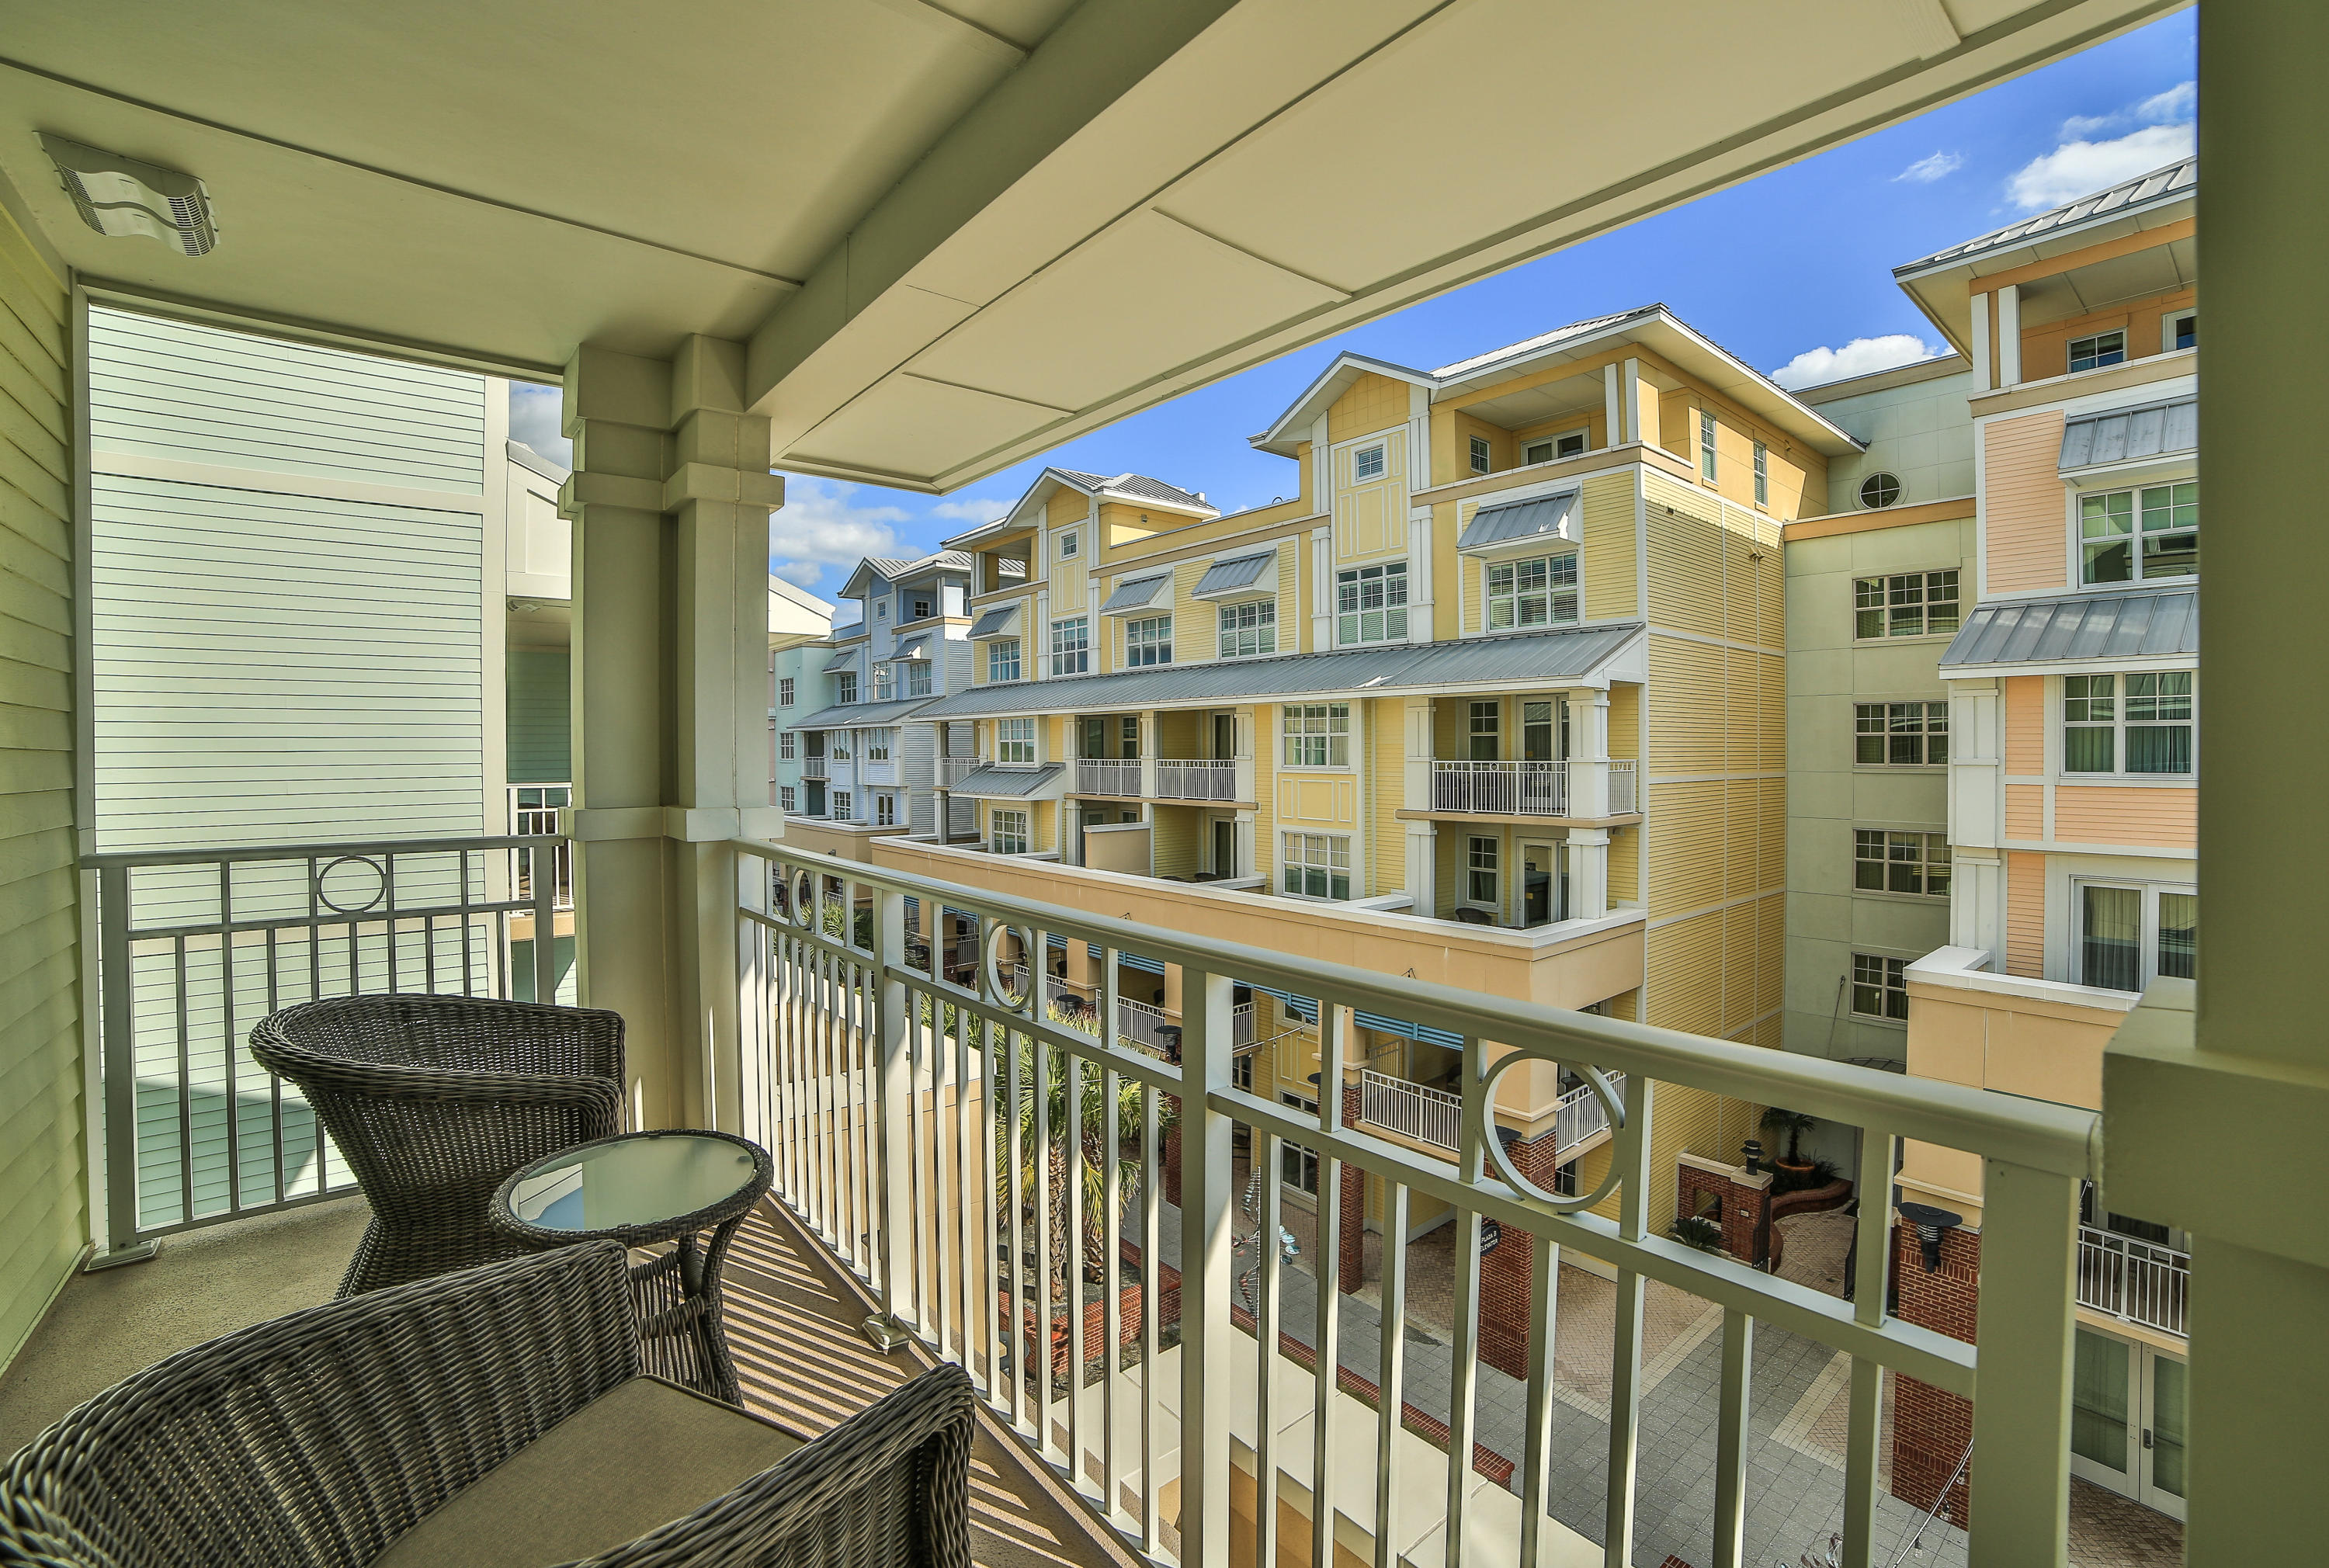 Wild Dunes Homes For Sale - A-408 Village At Wild Dunes, Isle of Palms, SC - 11